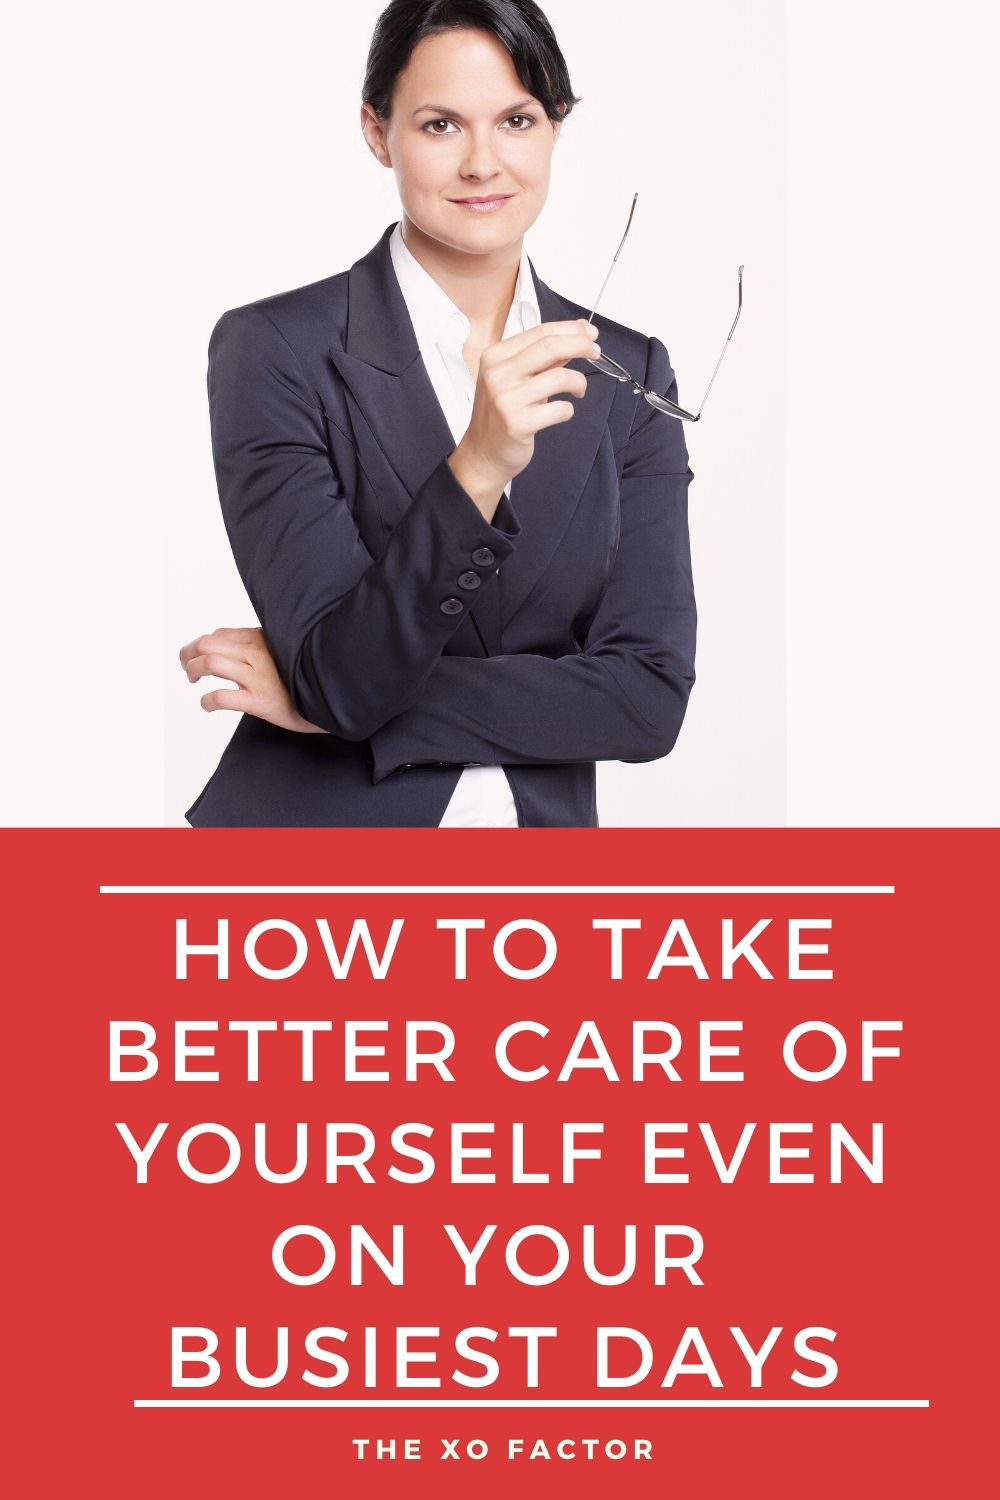 how to take better care of yourself even on your busiest days